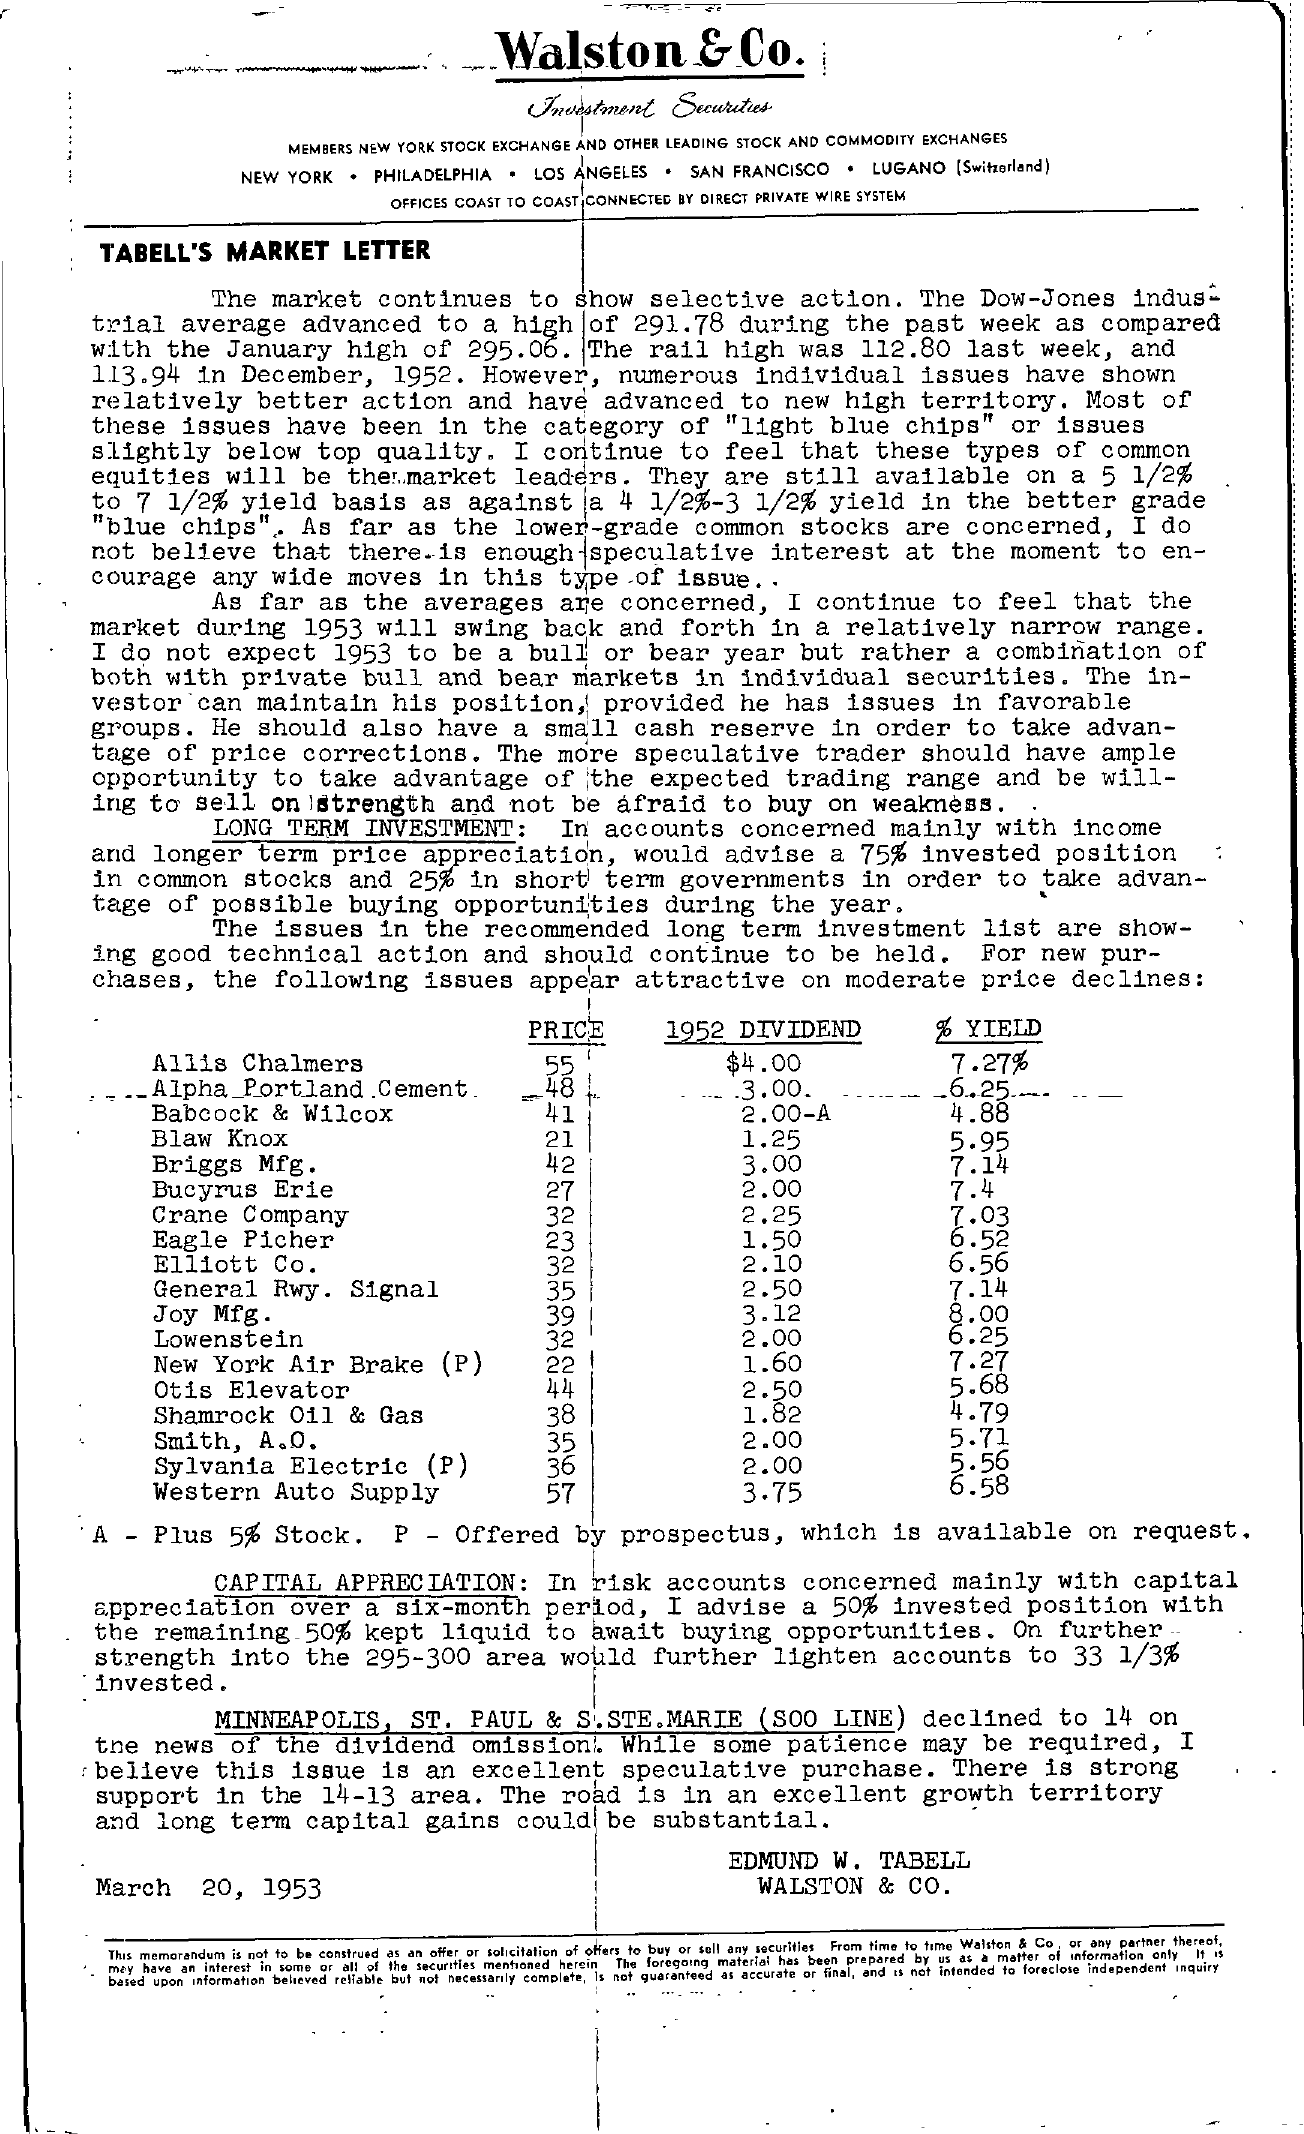 Tabell's Market Letter - March 20, 1953